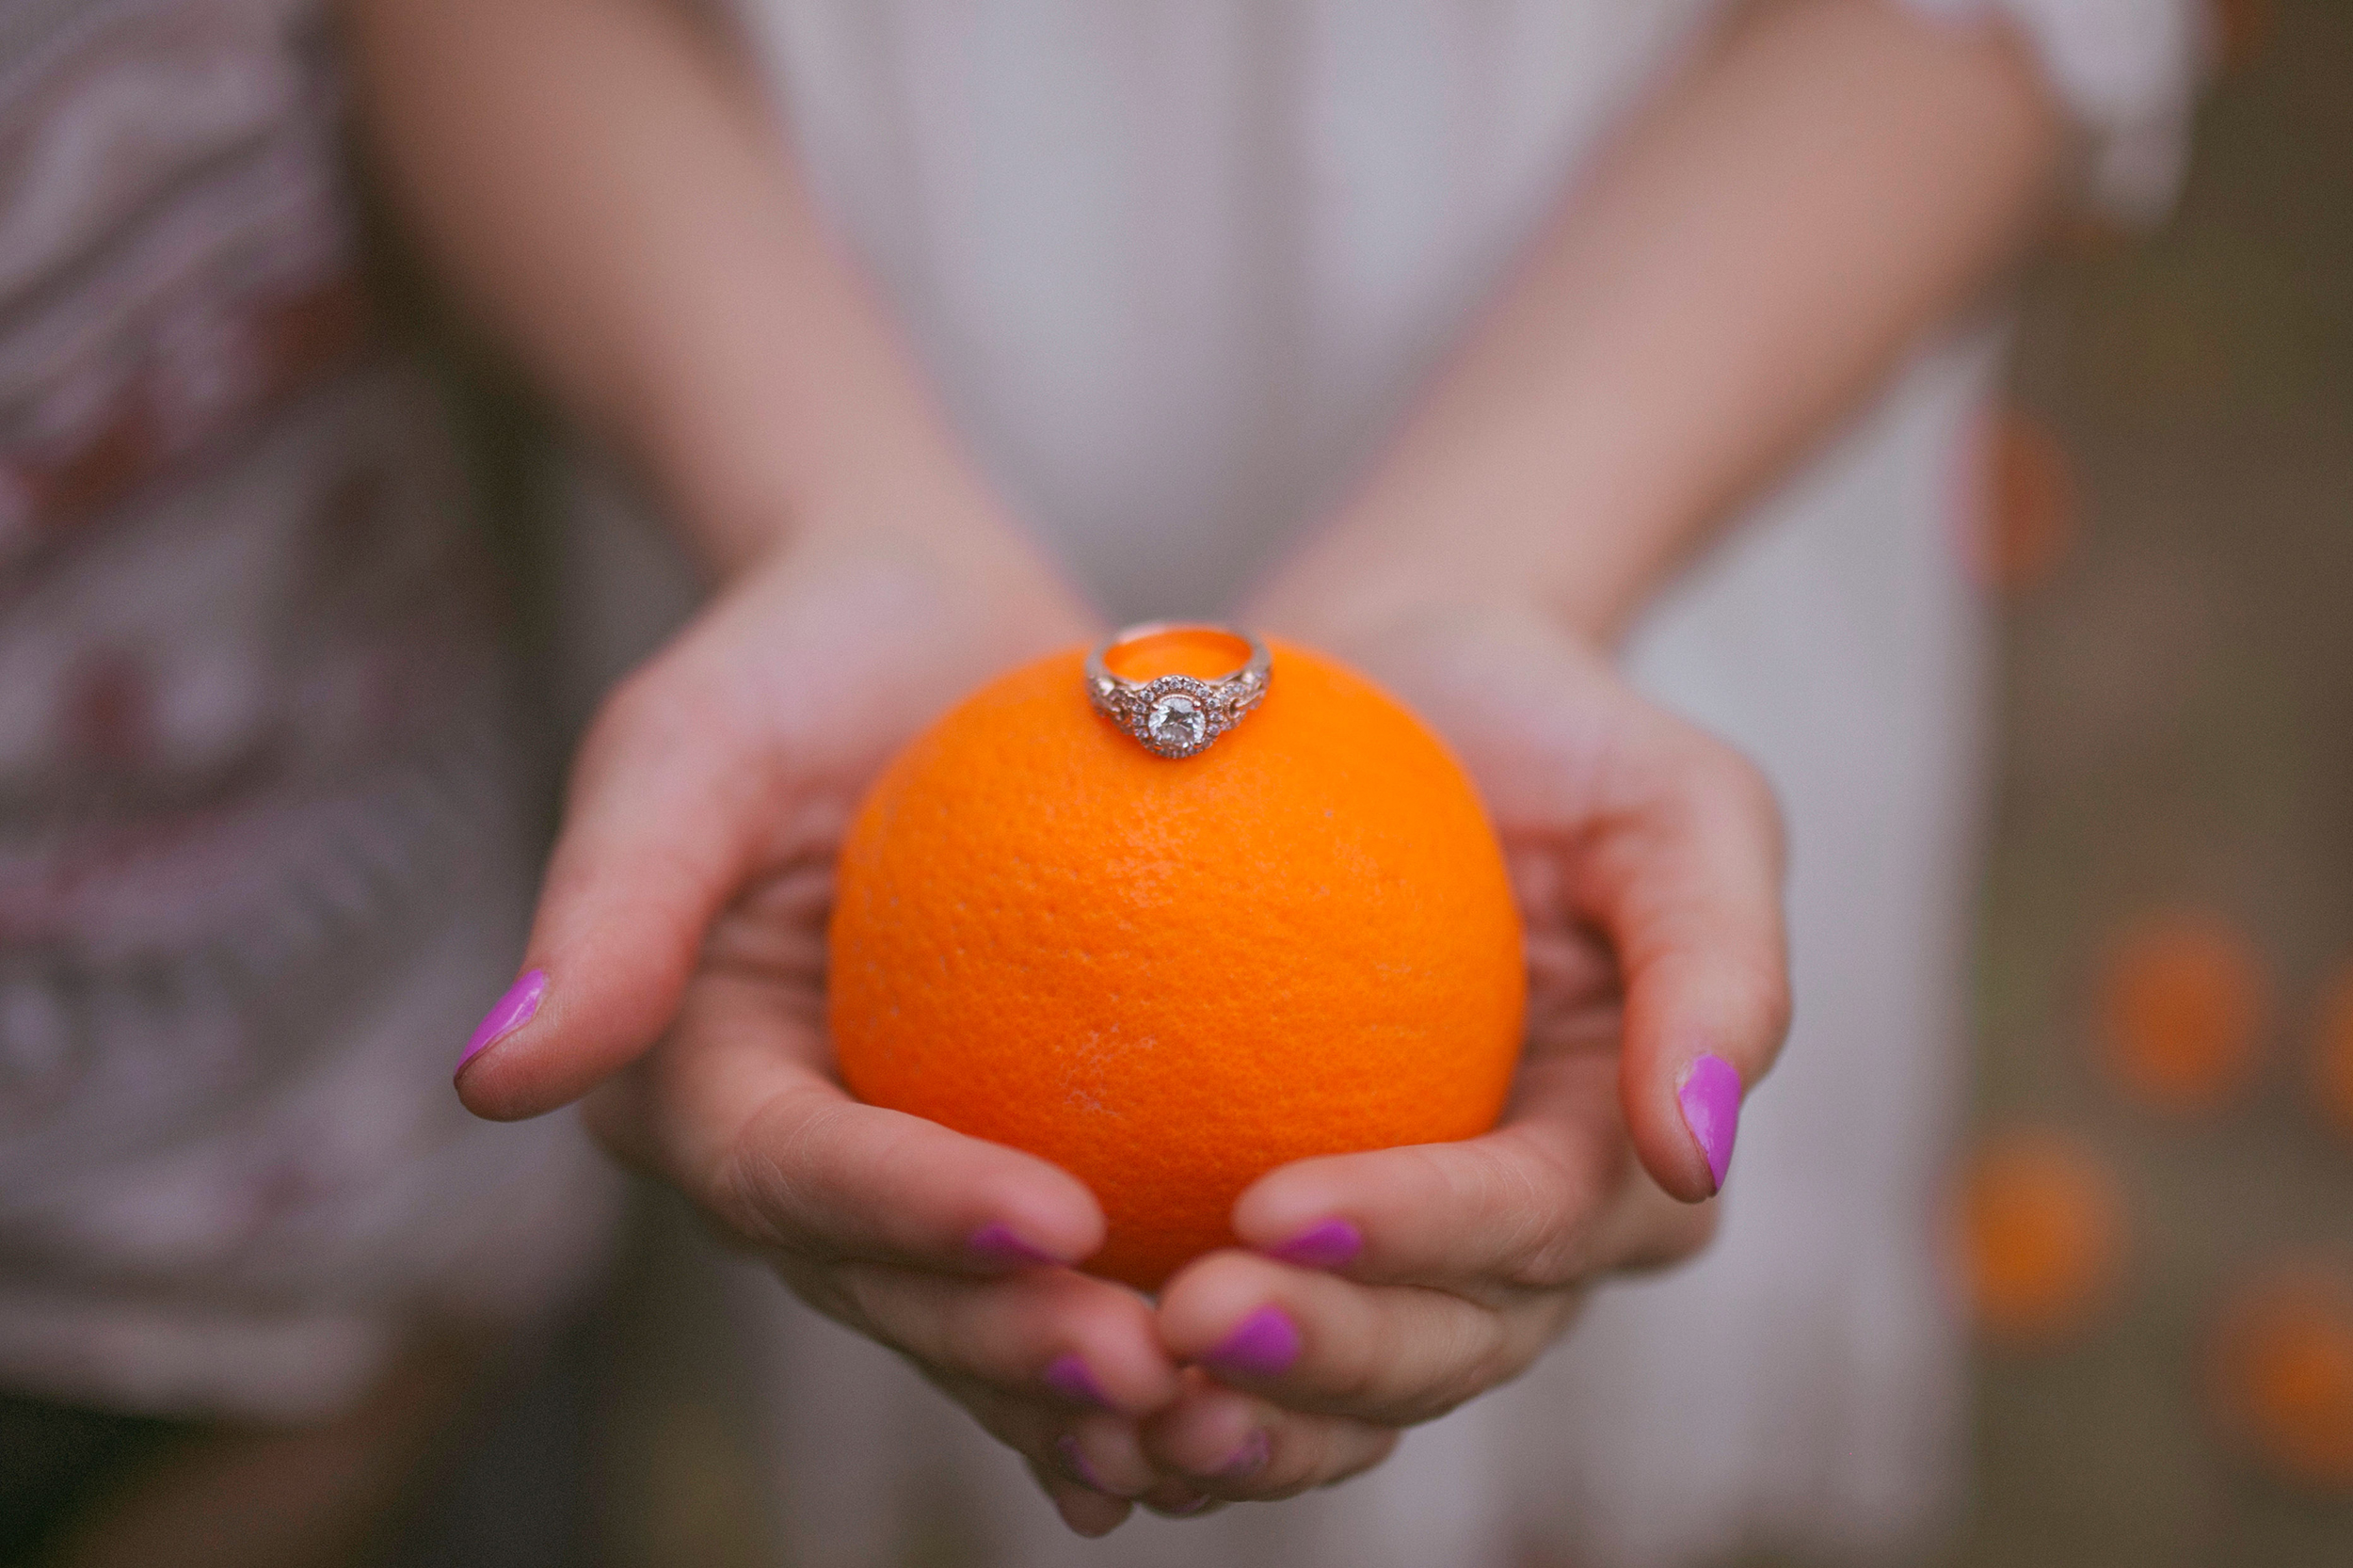 Colby-and-Jess-Adventure-Engagement-Photography-Orange-Grove-San-Bernardino-California295.jpg